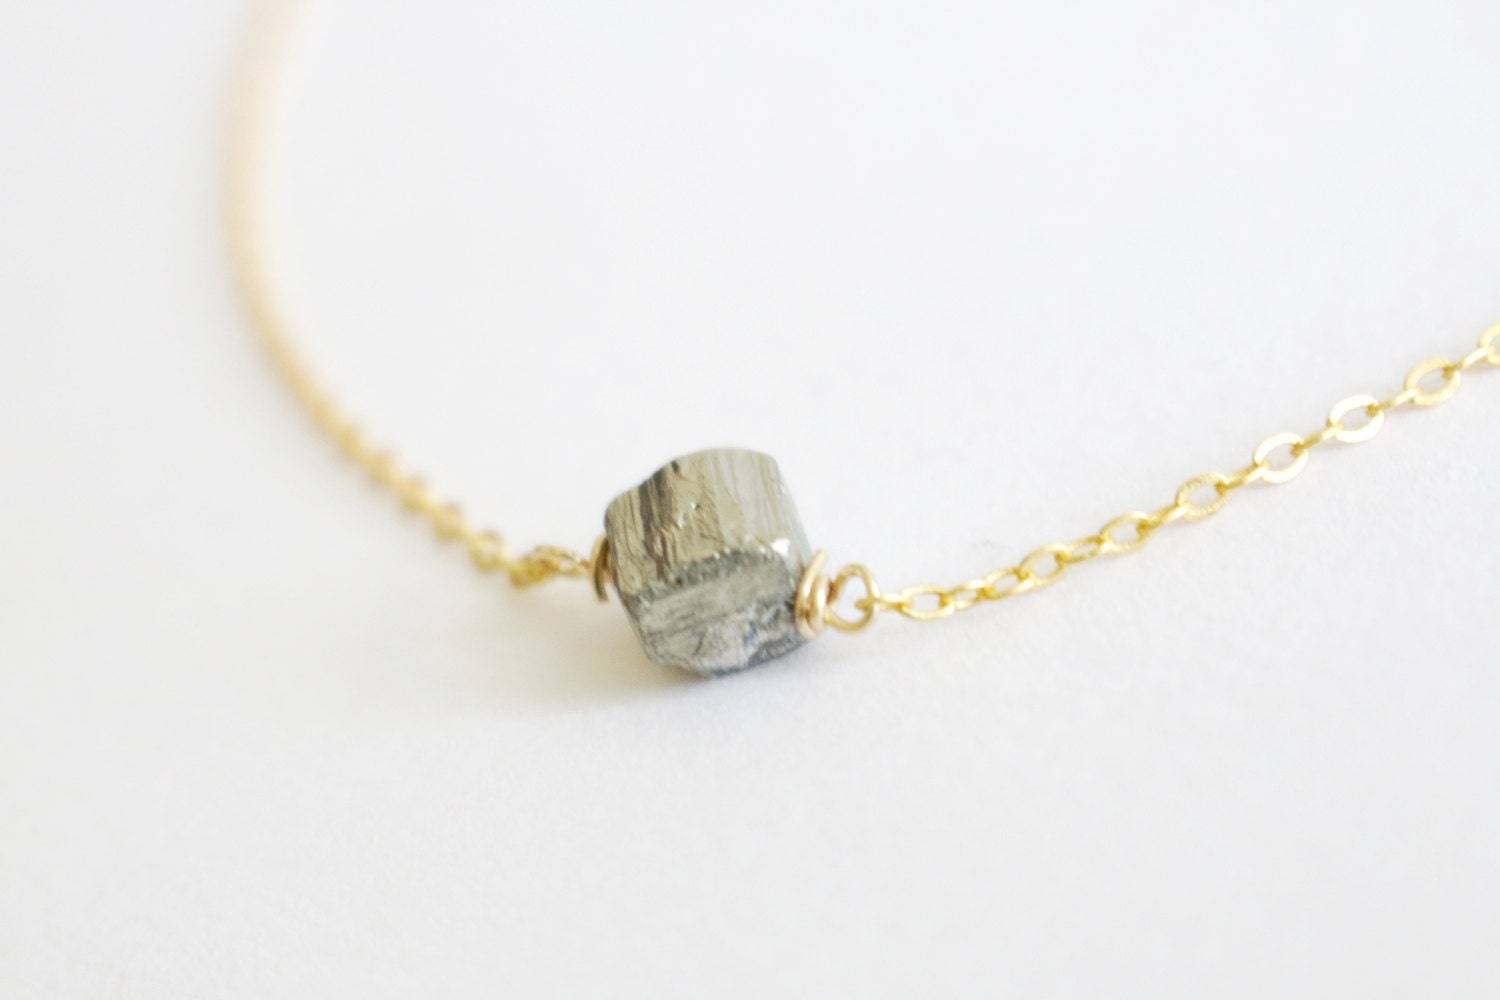 pyrite necklace pyrite jewelry necklaceraw